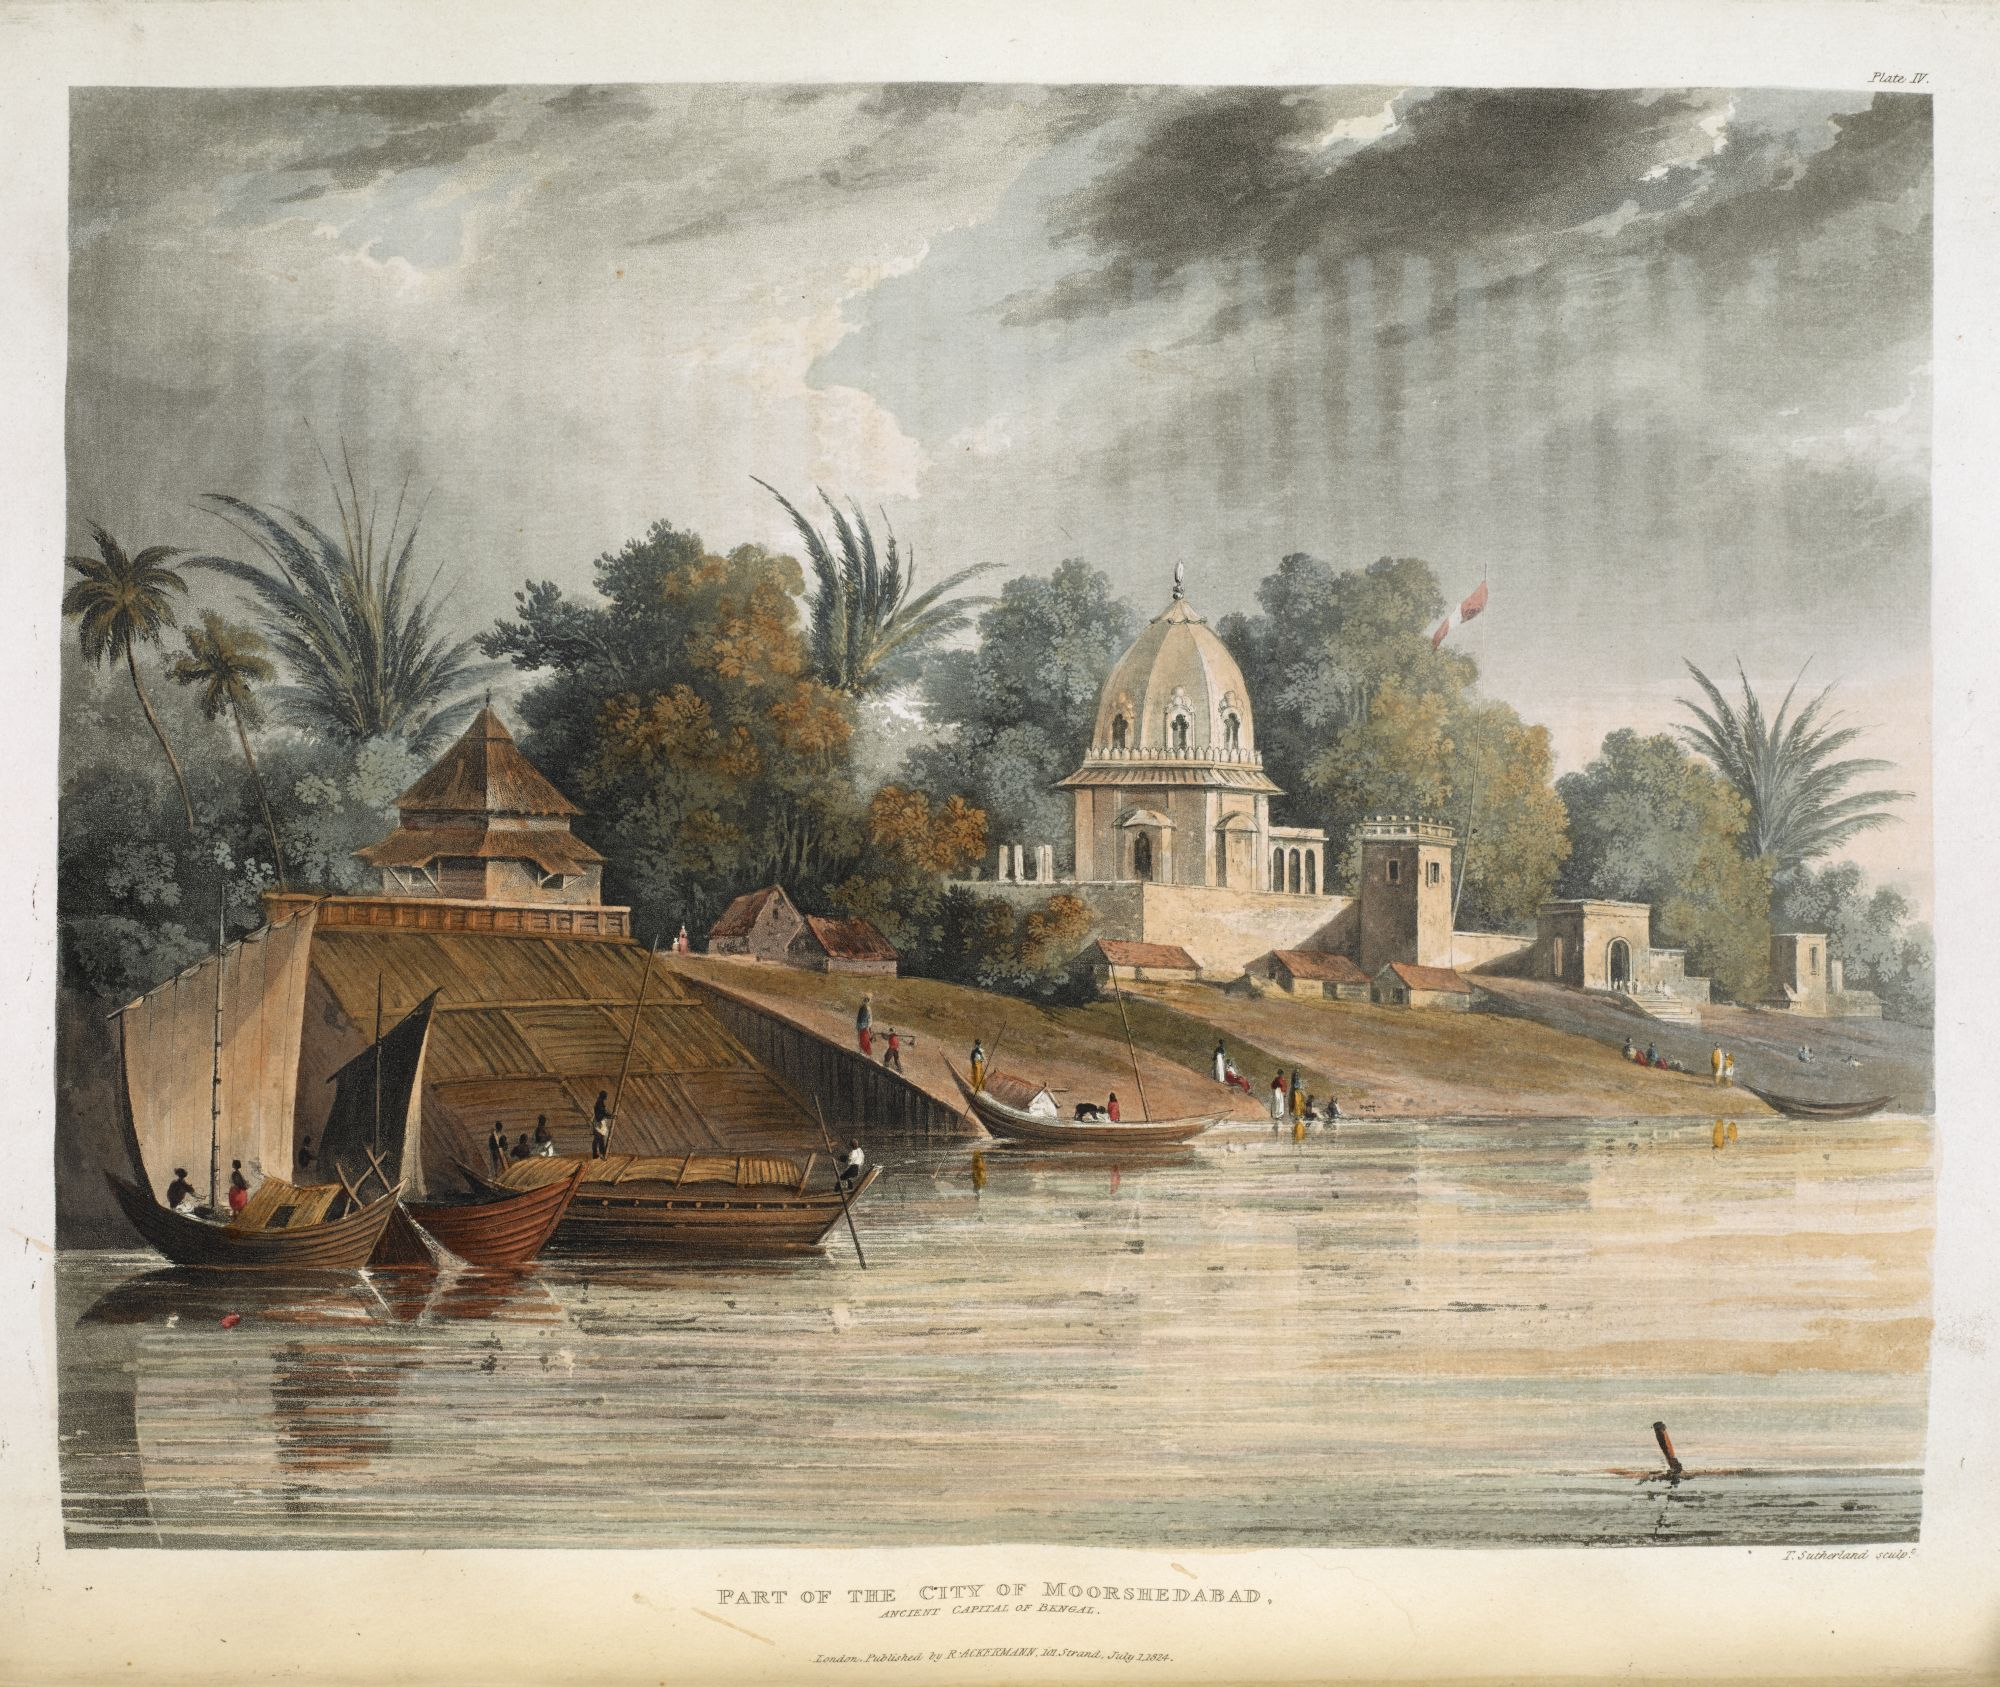 Part of the City of Moorshedabad, by Thomas Sutherland after Charles Ramus Forrest.